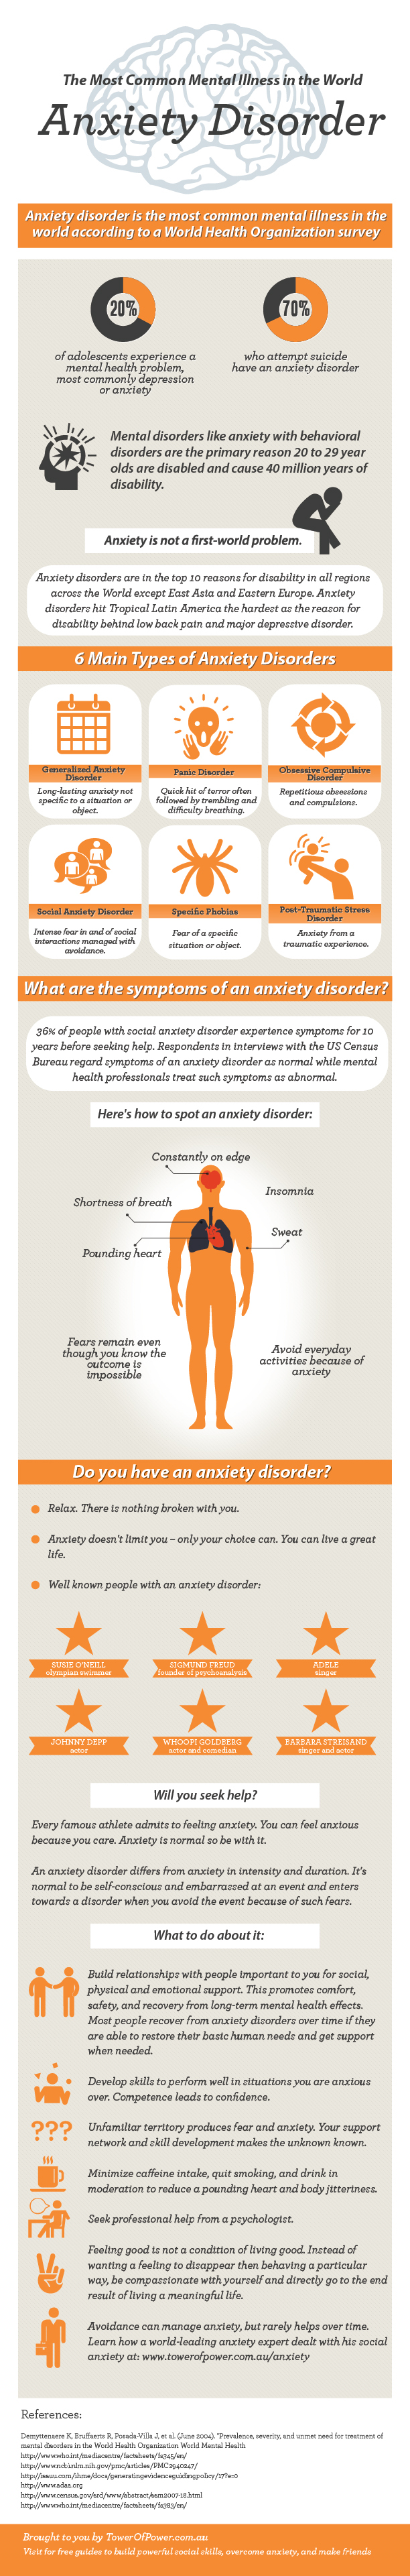 Anxiety disorder infographic Anxiety Disorders Understanding Childhood Anxiety Disorders anxiety disorder